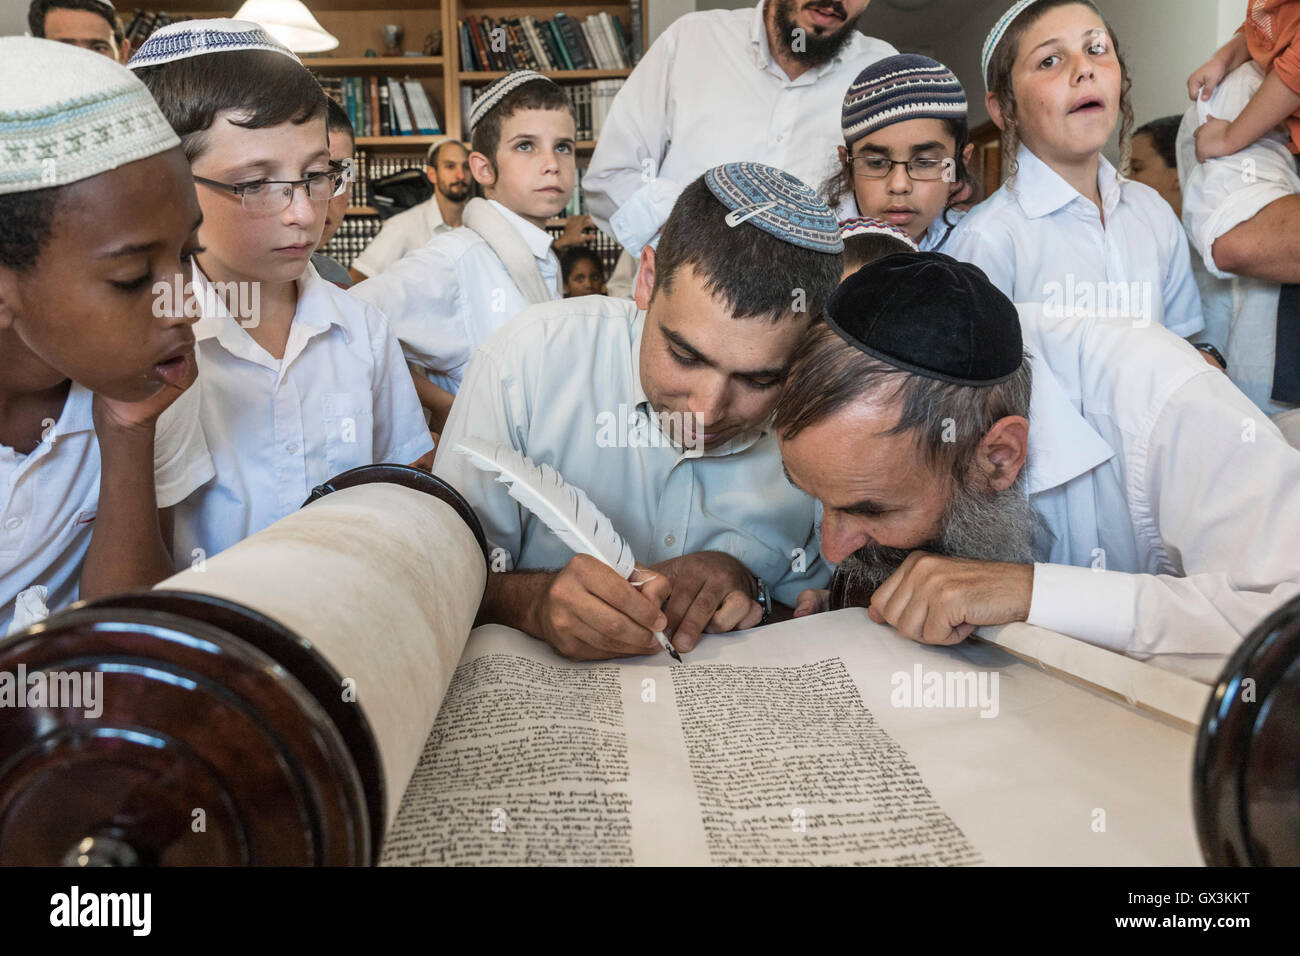 Neria, Israel. 15th September, 2016. A group of childern overlook a scrivener writing the last letters in the holy - Stock Image